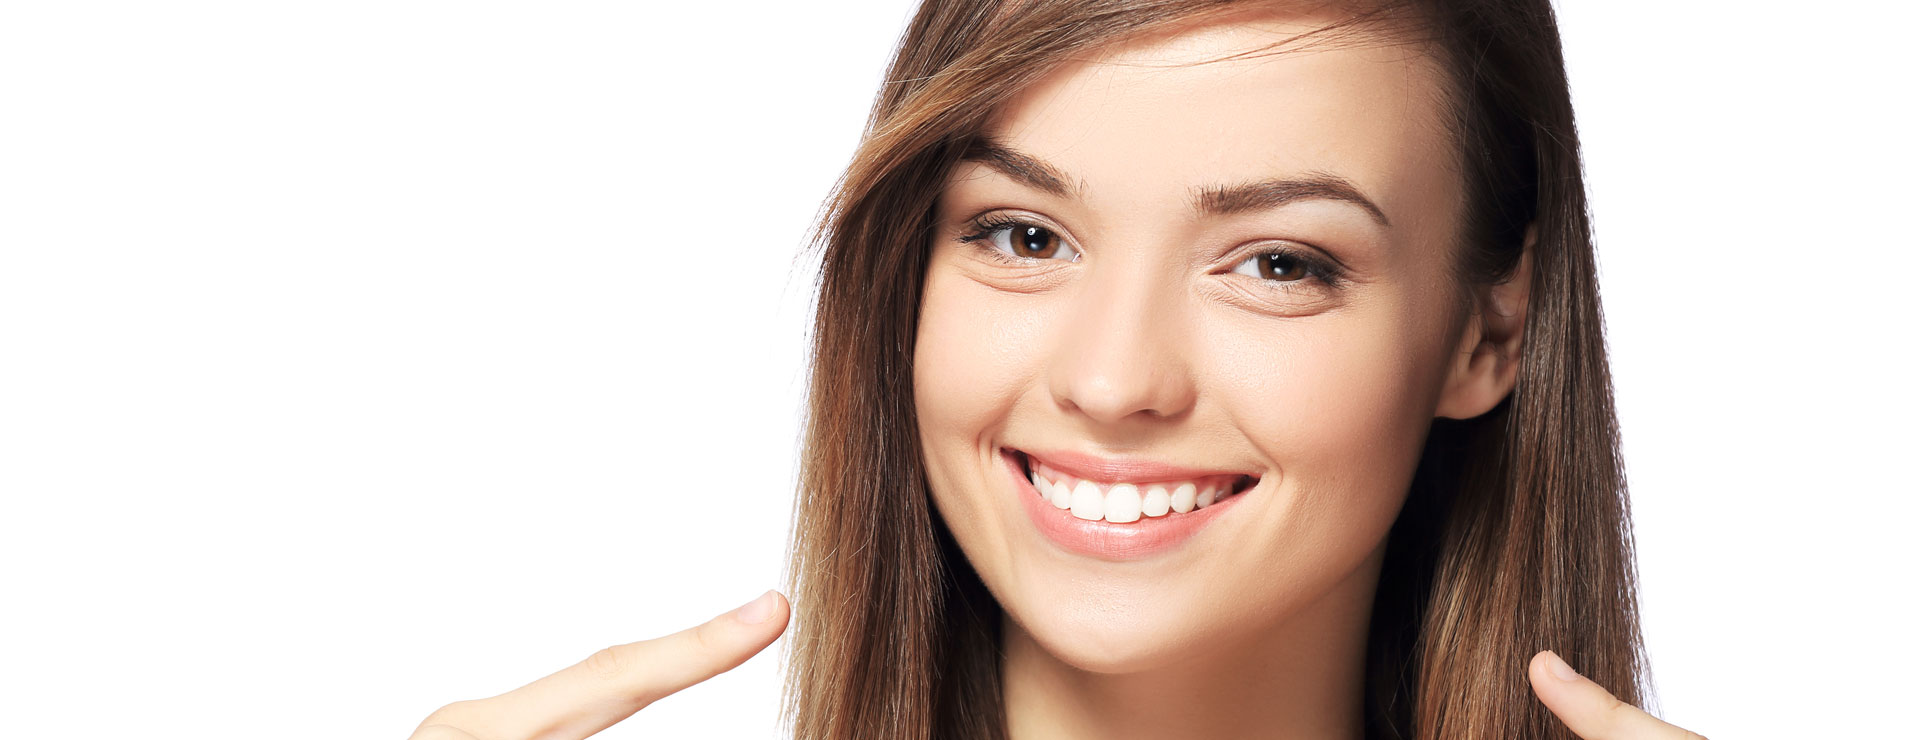 Happy girl pointing at her teeth after smile makeover